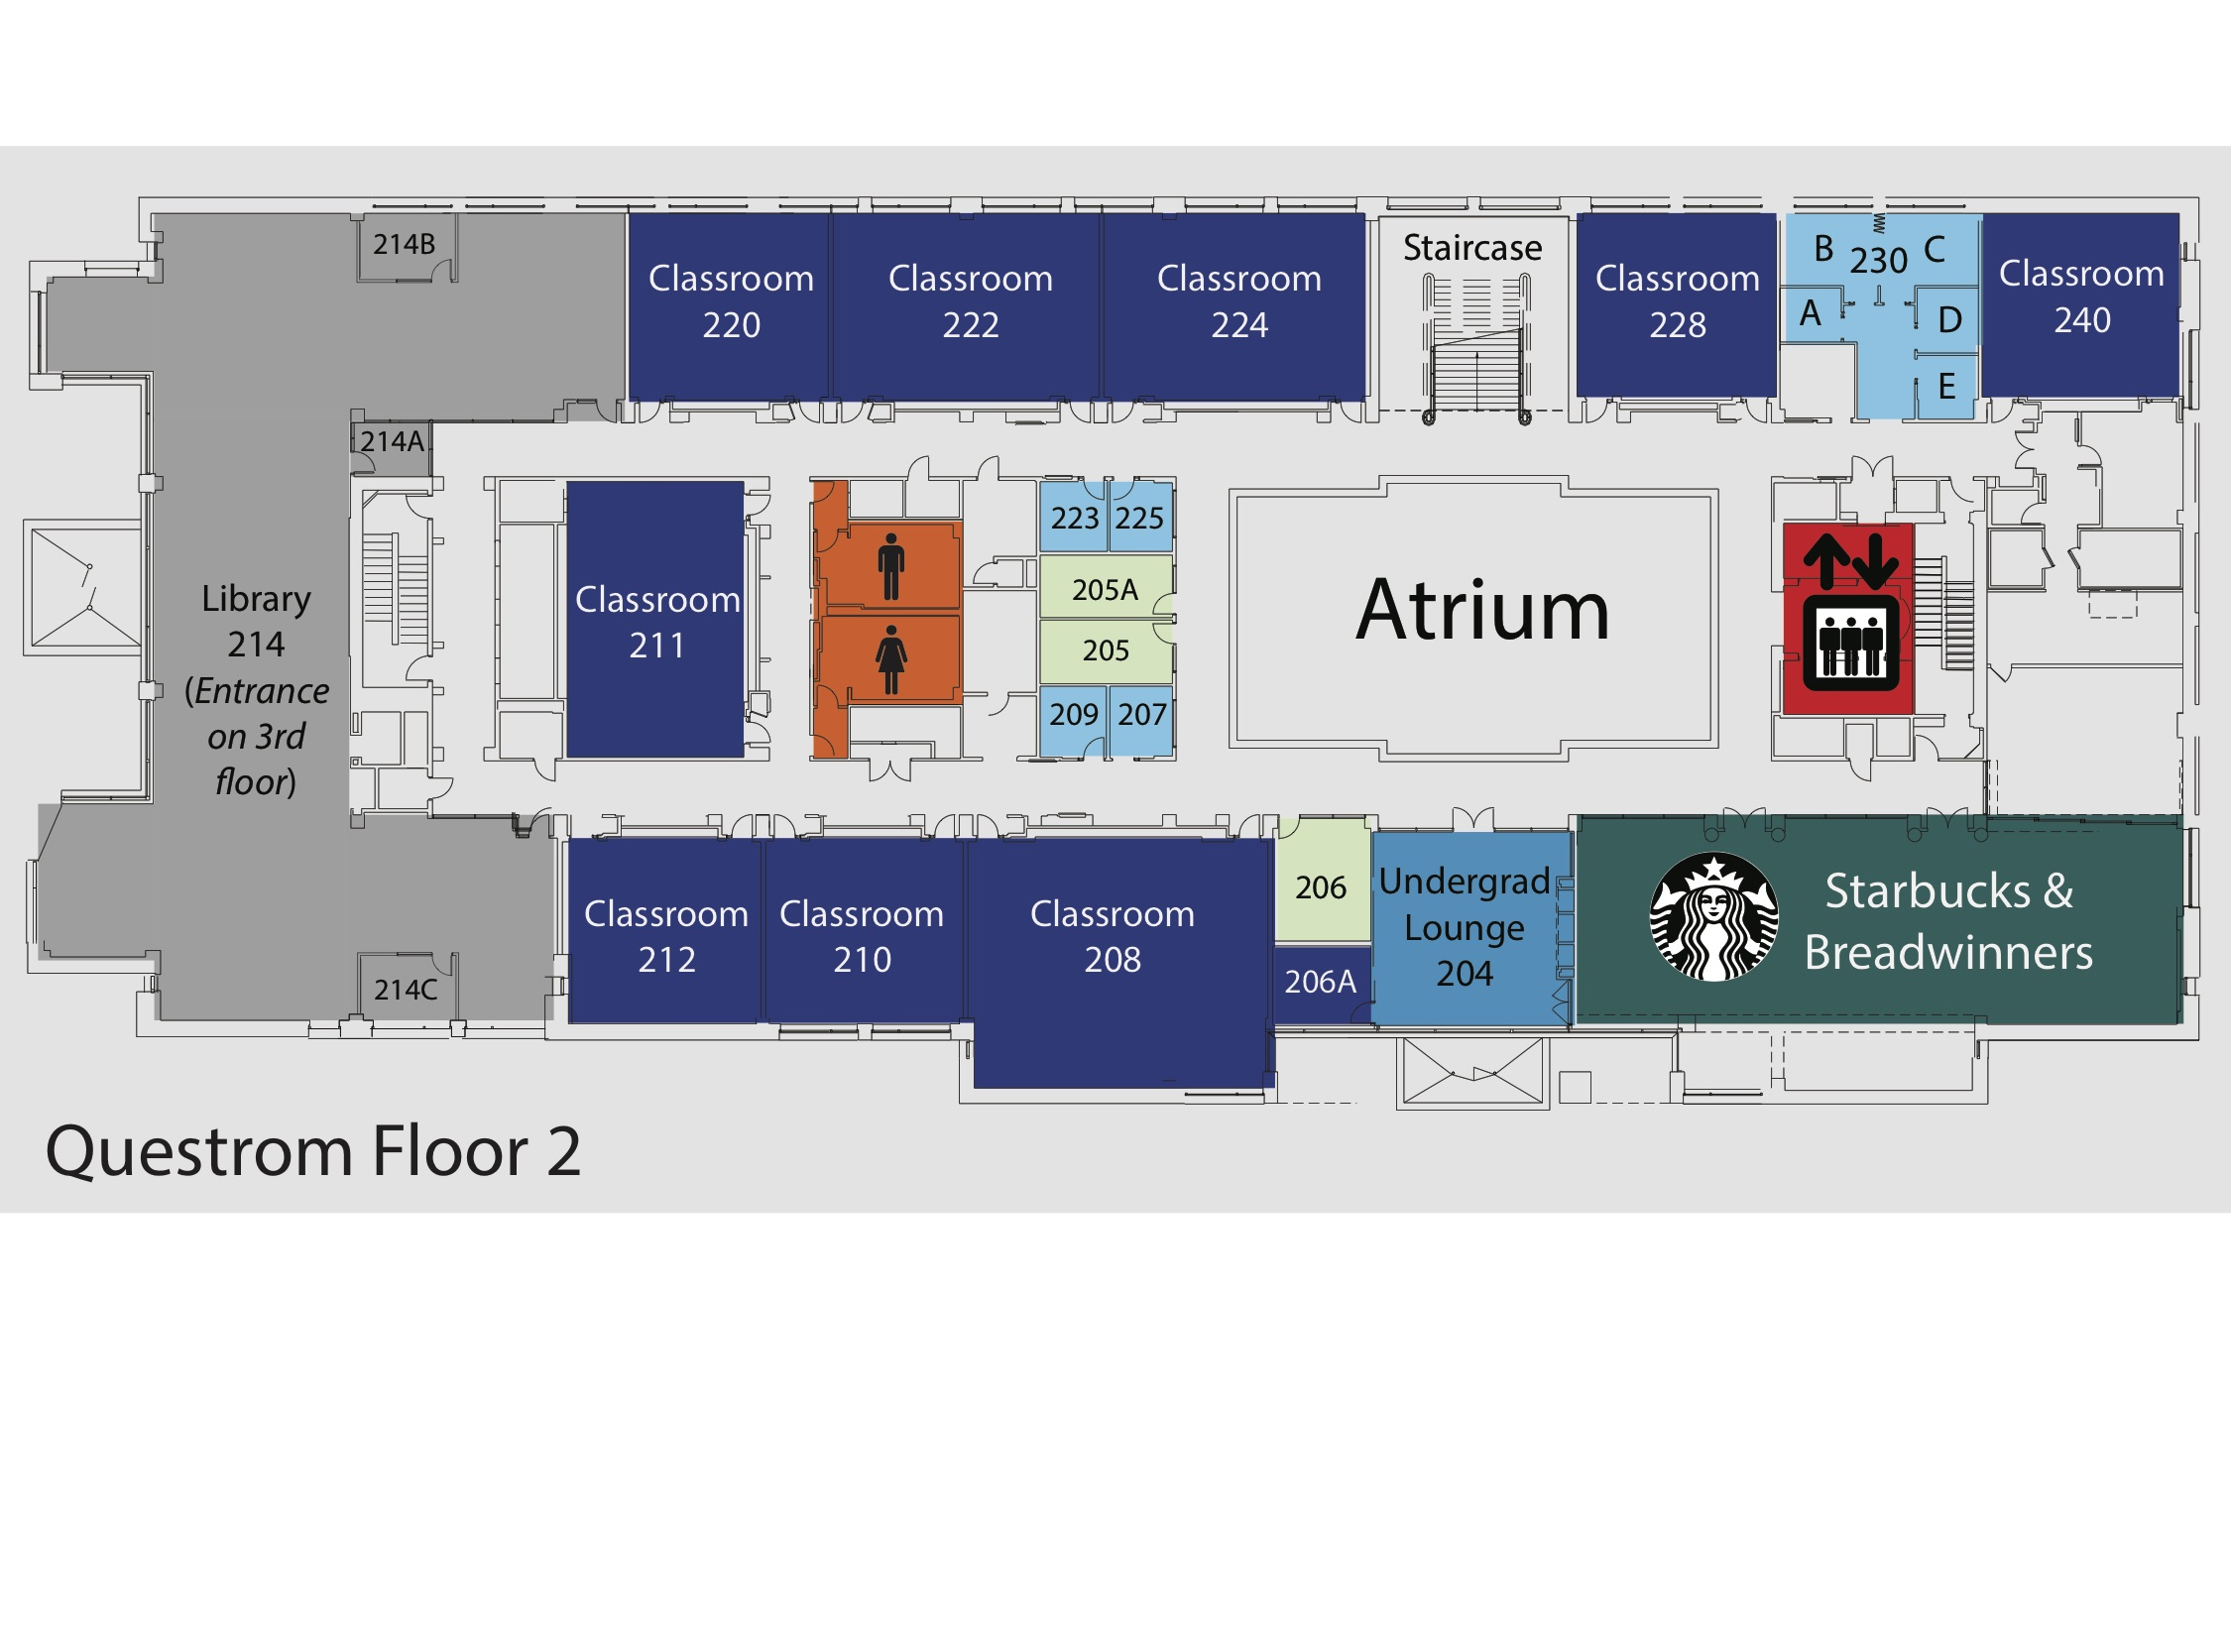 Maps595 on First Floor Second